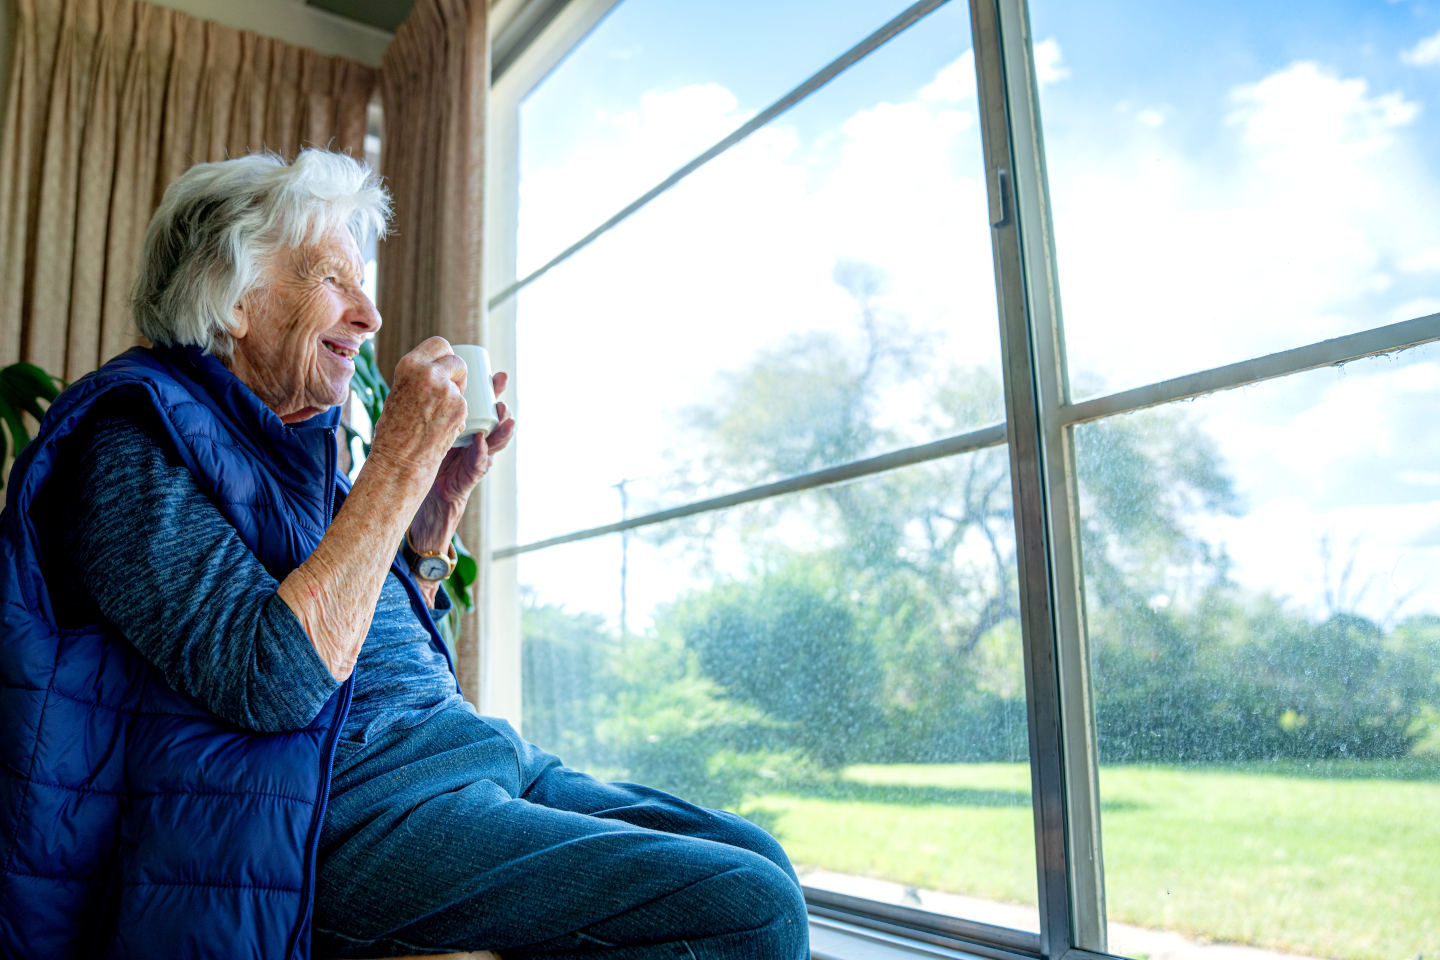 Elderly Senior Caucasian Woman Indoors Holding Coffee or Tea in a Mug and Looking Out the Window Enjoying the View in the Summer